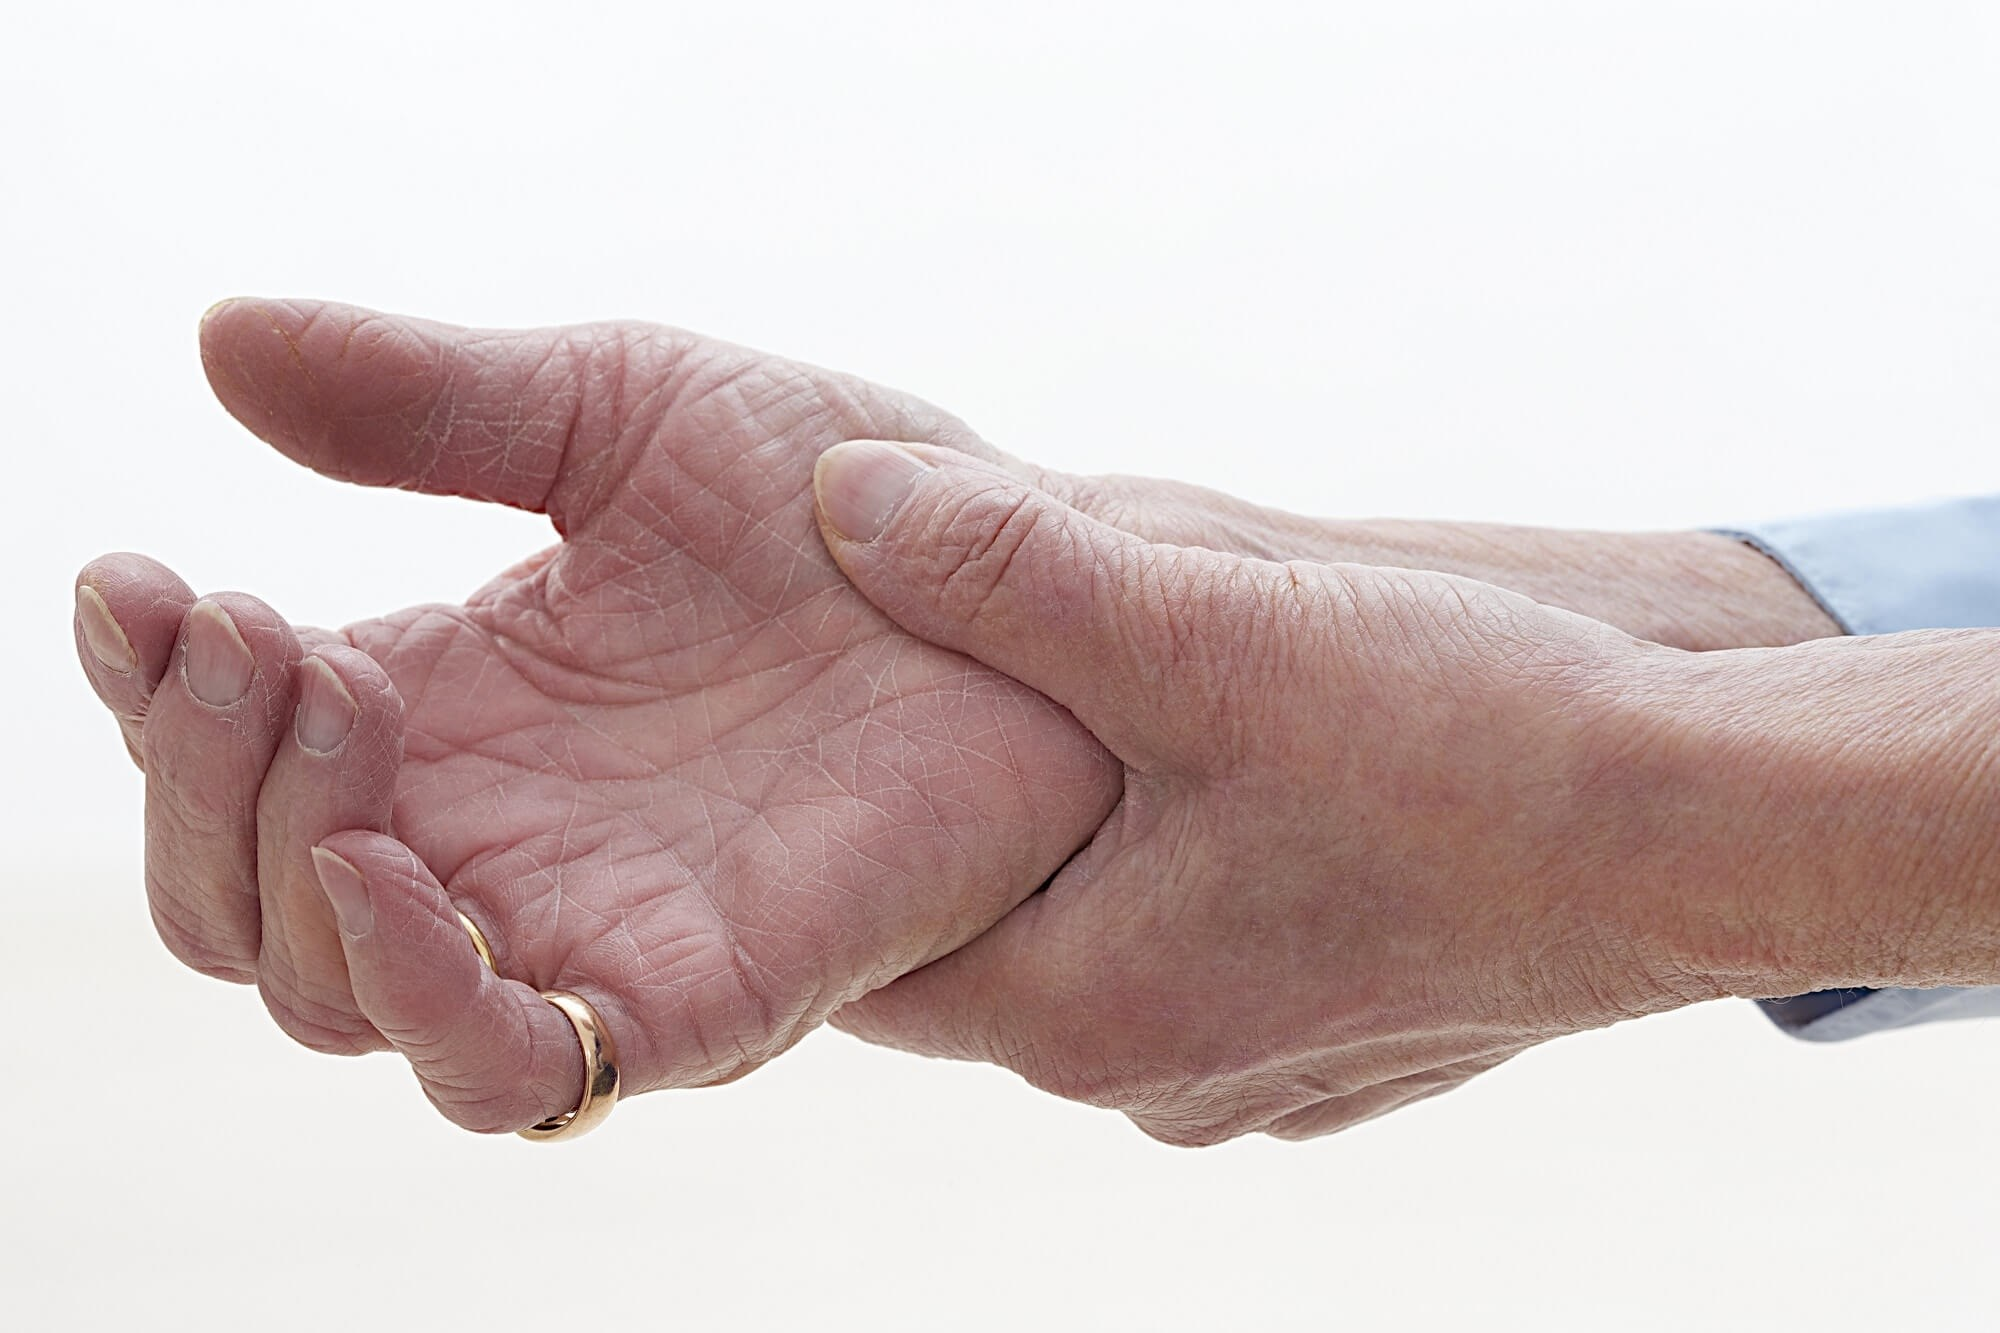 Factors Affecting Hand Function, Disability in Rheumatoid Arthritis